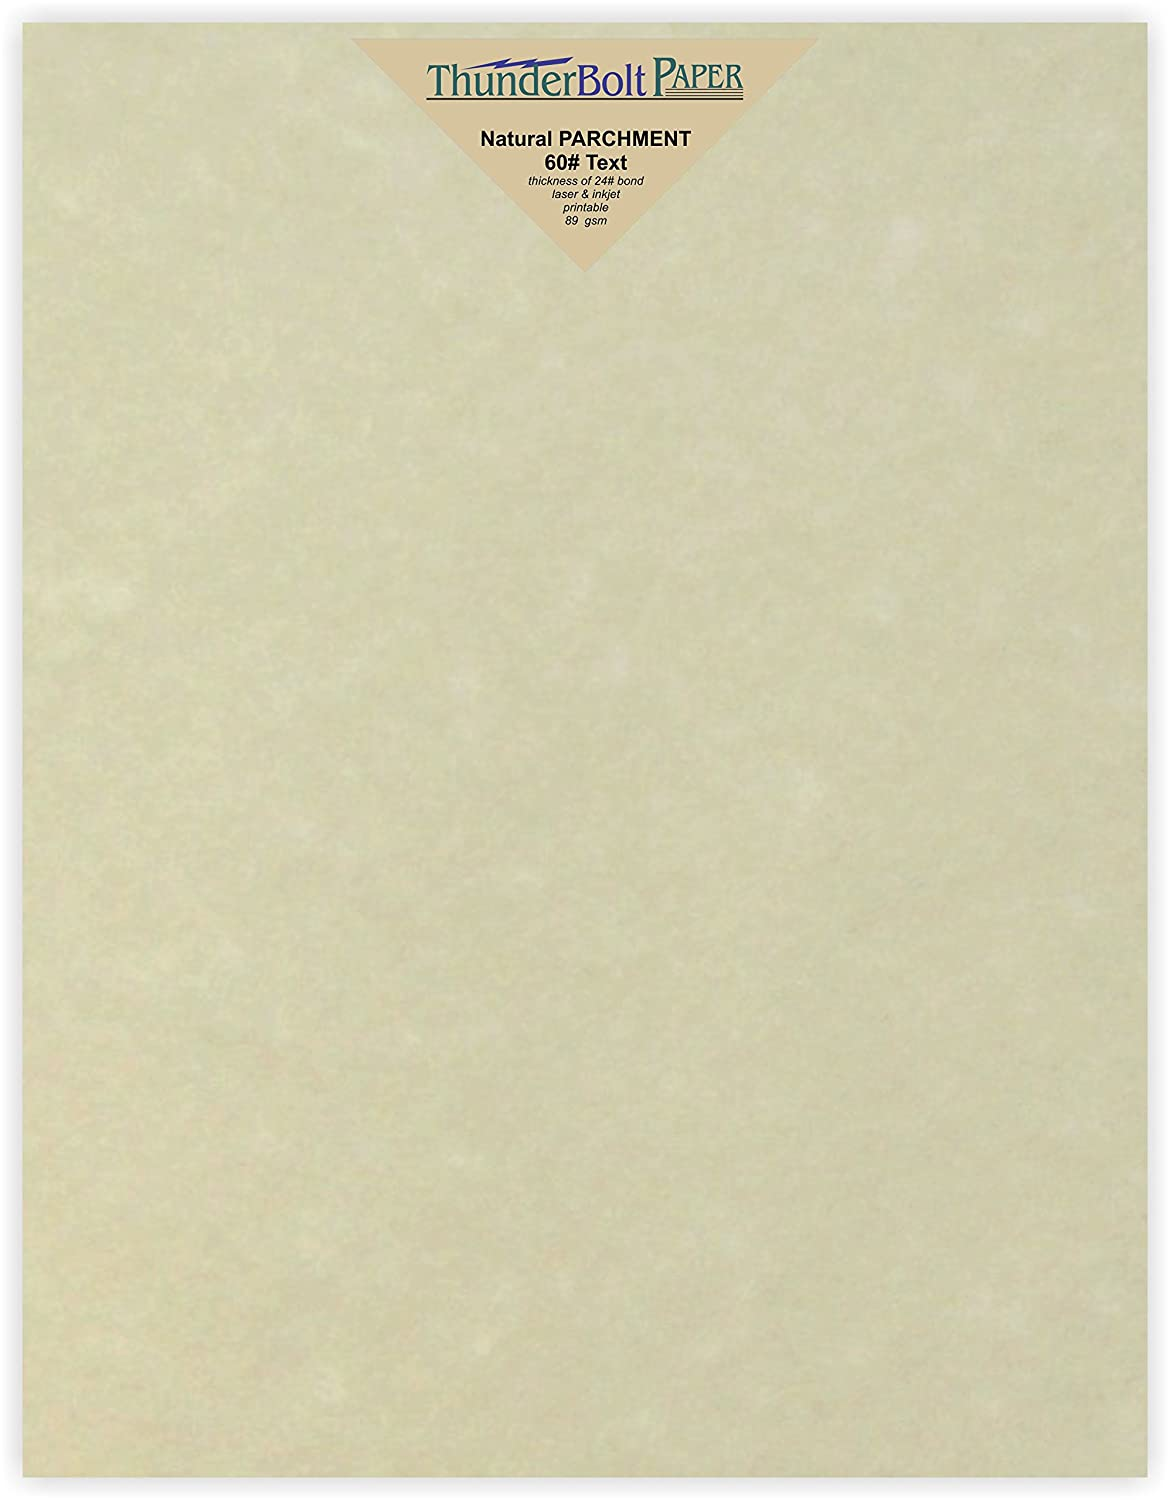 350 Natural Parchment 60# Text (=24# Bond) Paper Sheets - 8.5 X 11 Inches Standard Letter|Flyer Size - 60 Pound is Not Card Weight - Vintage Colored Old Parchment Semblance TBP 4336882739